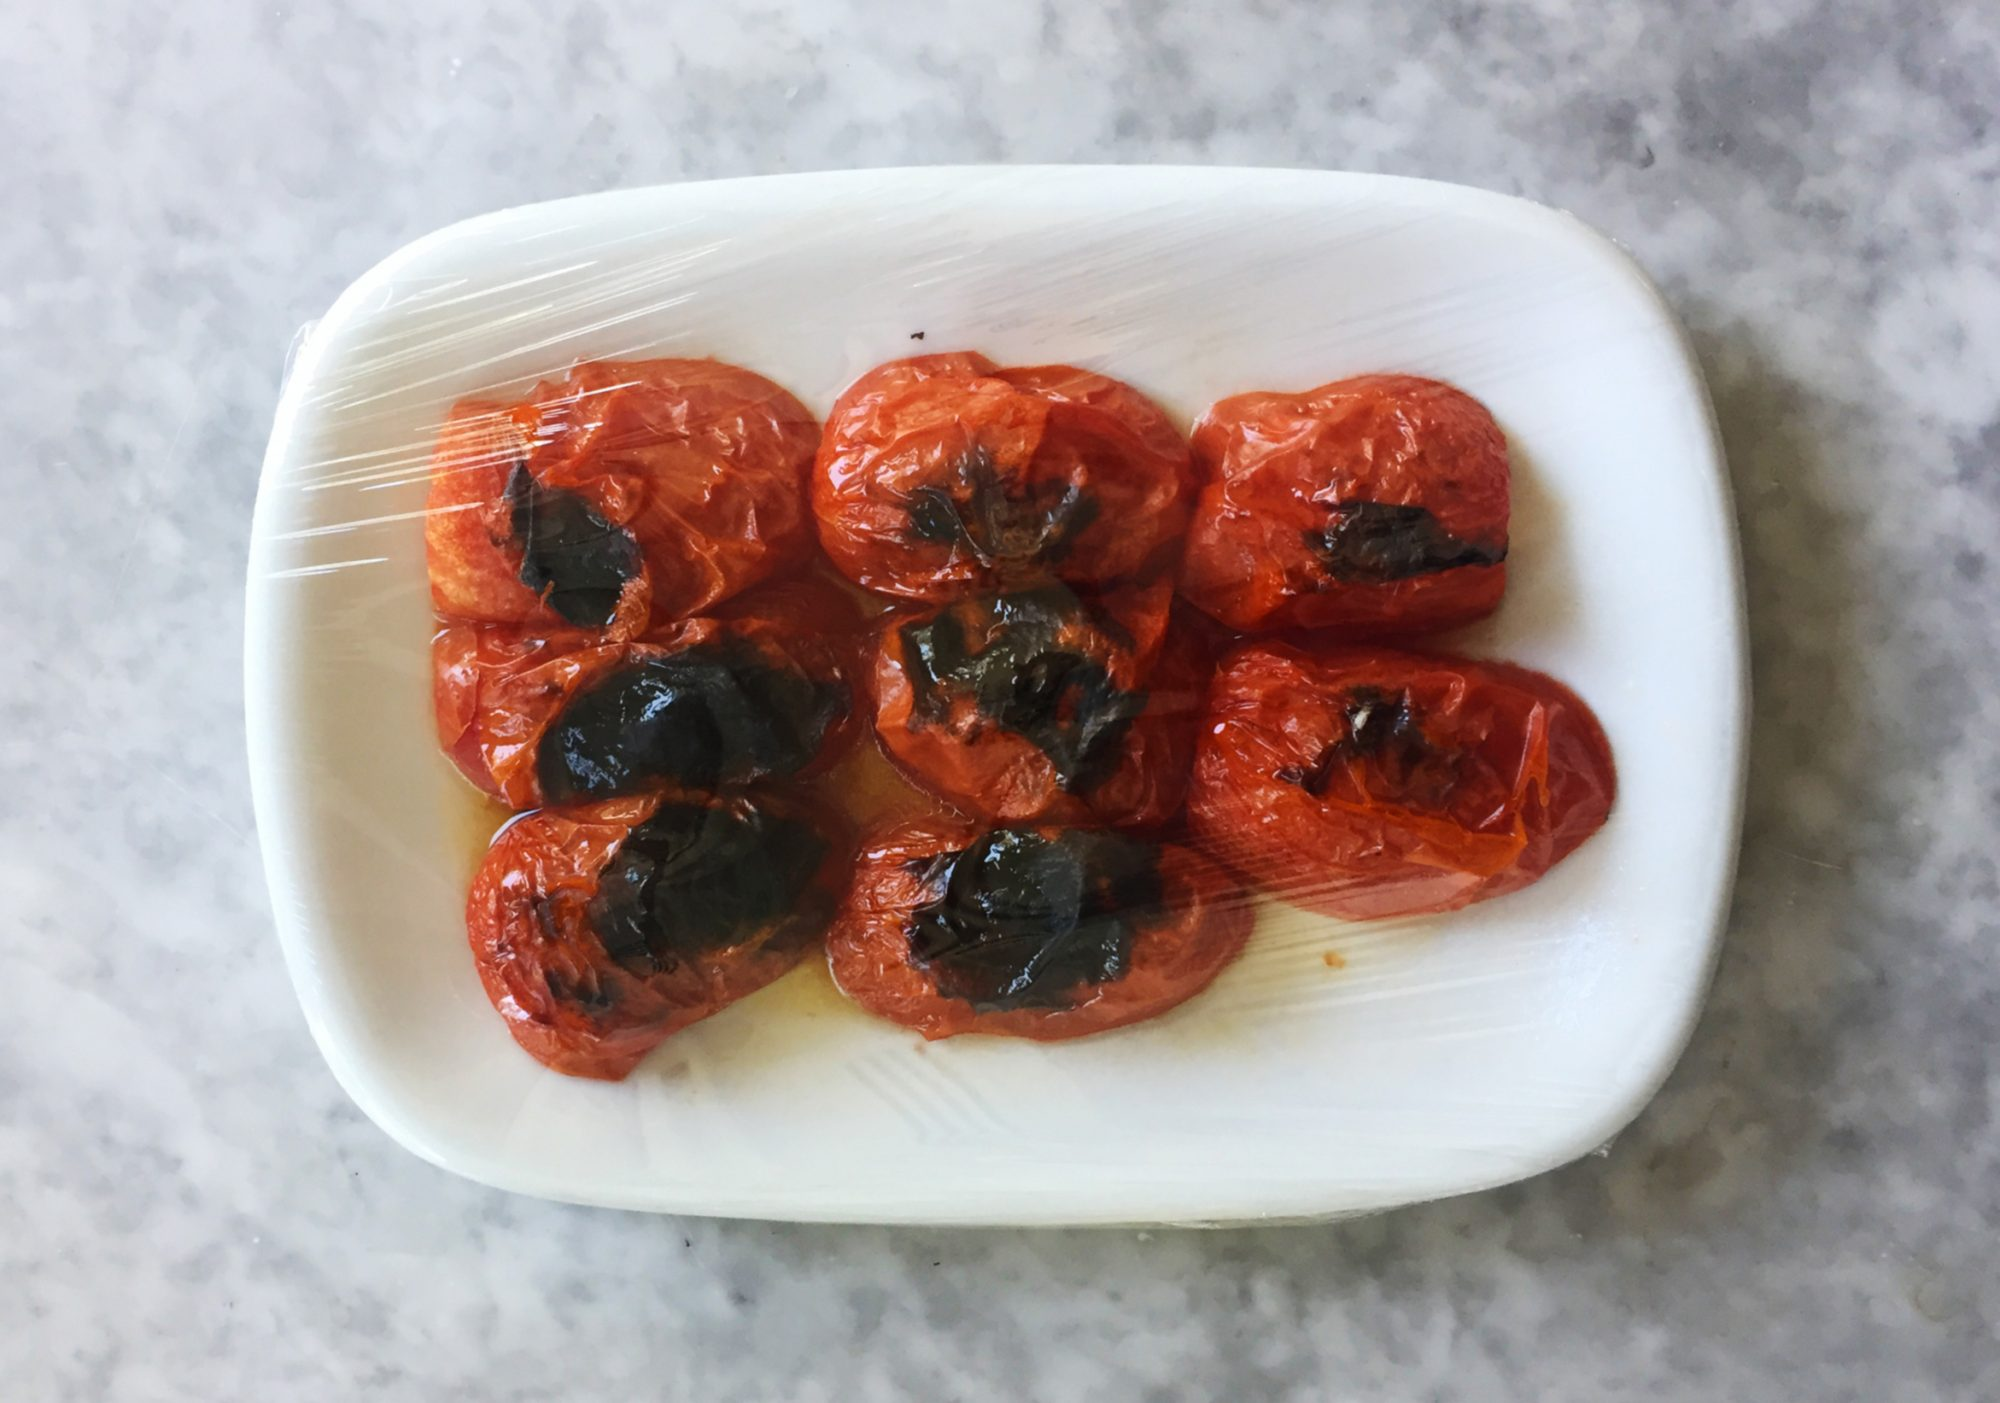 Fire-roasted tomatoes on plate with plastic wrap.